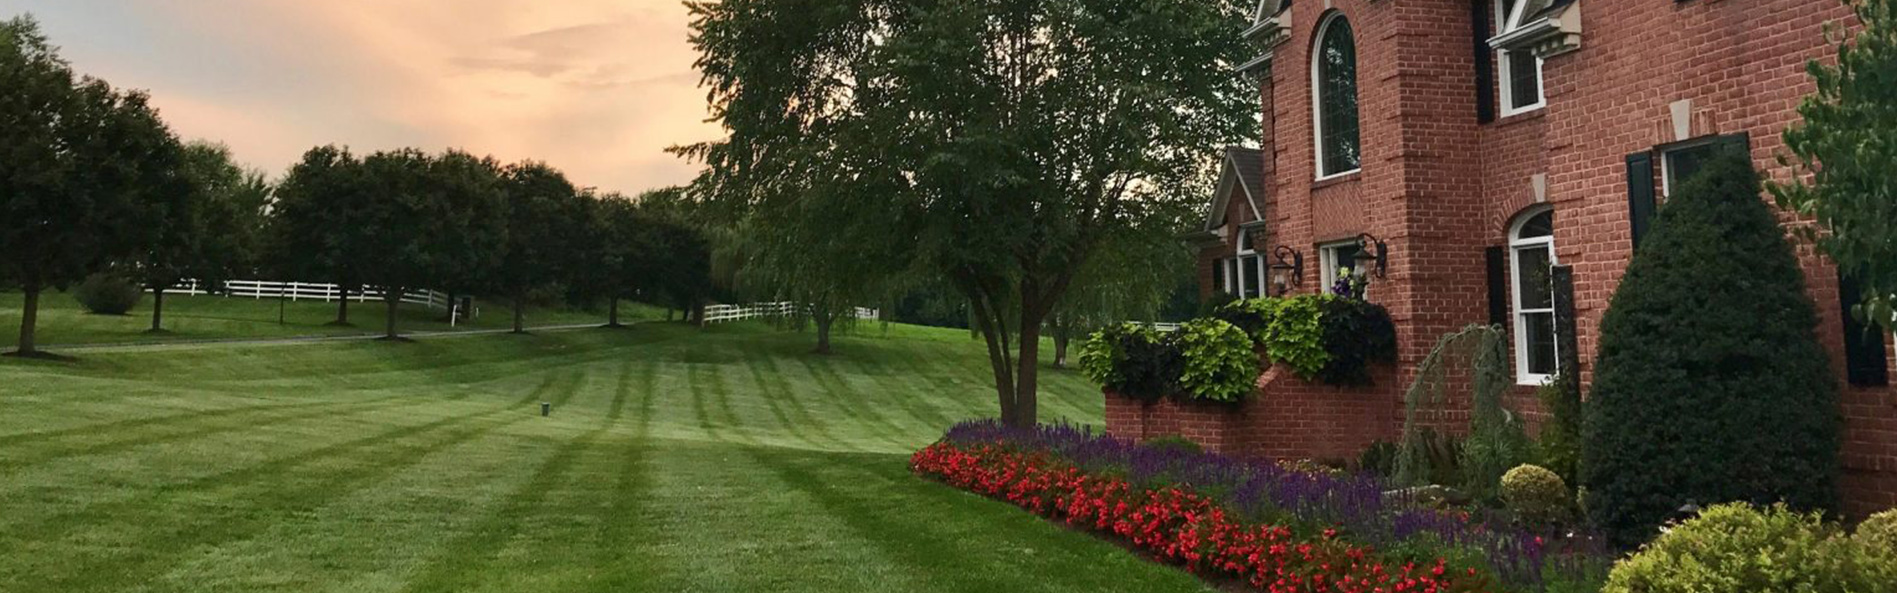 Landscaping Services in Ellicott City, Glenwood MD, Sykesville